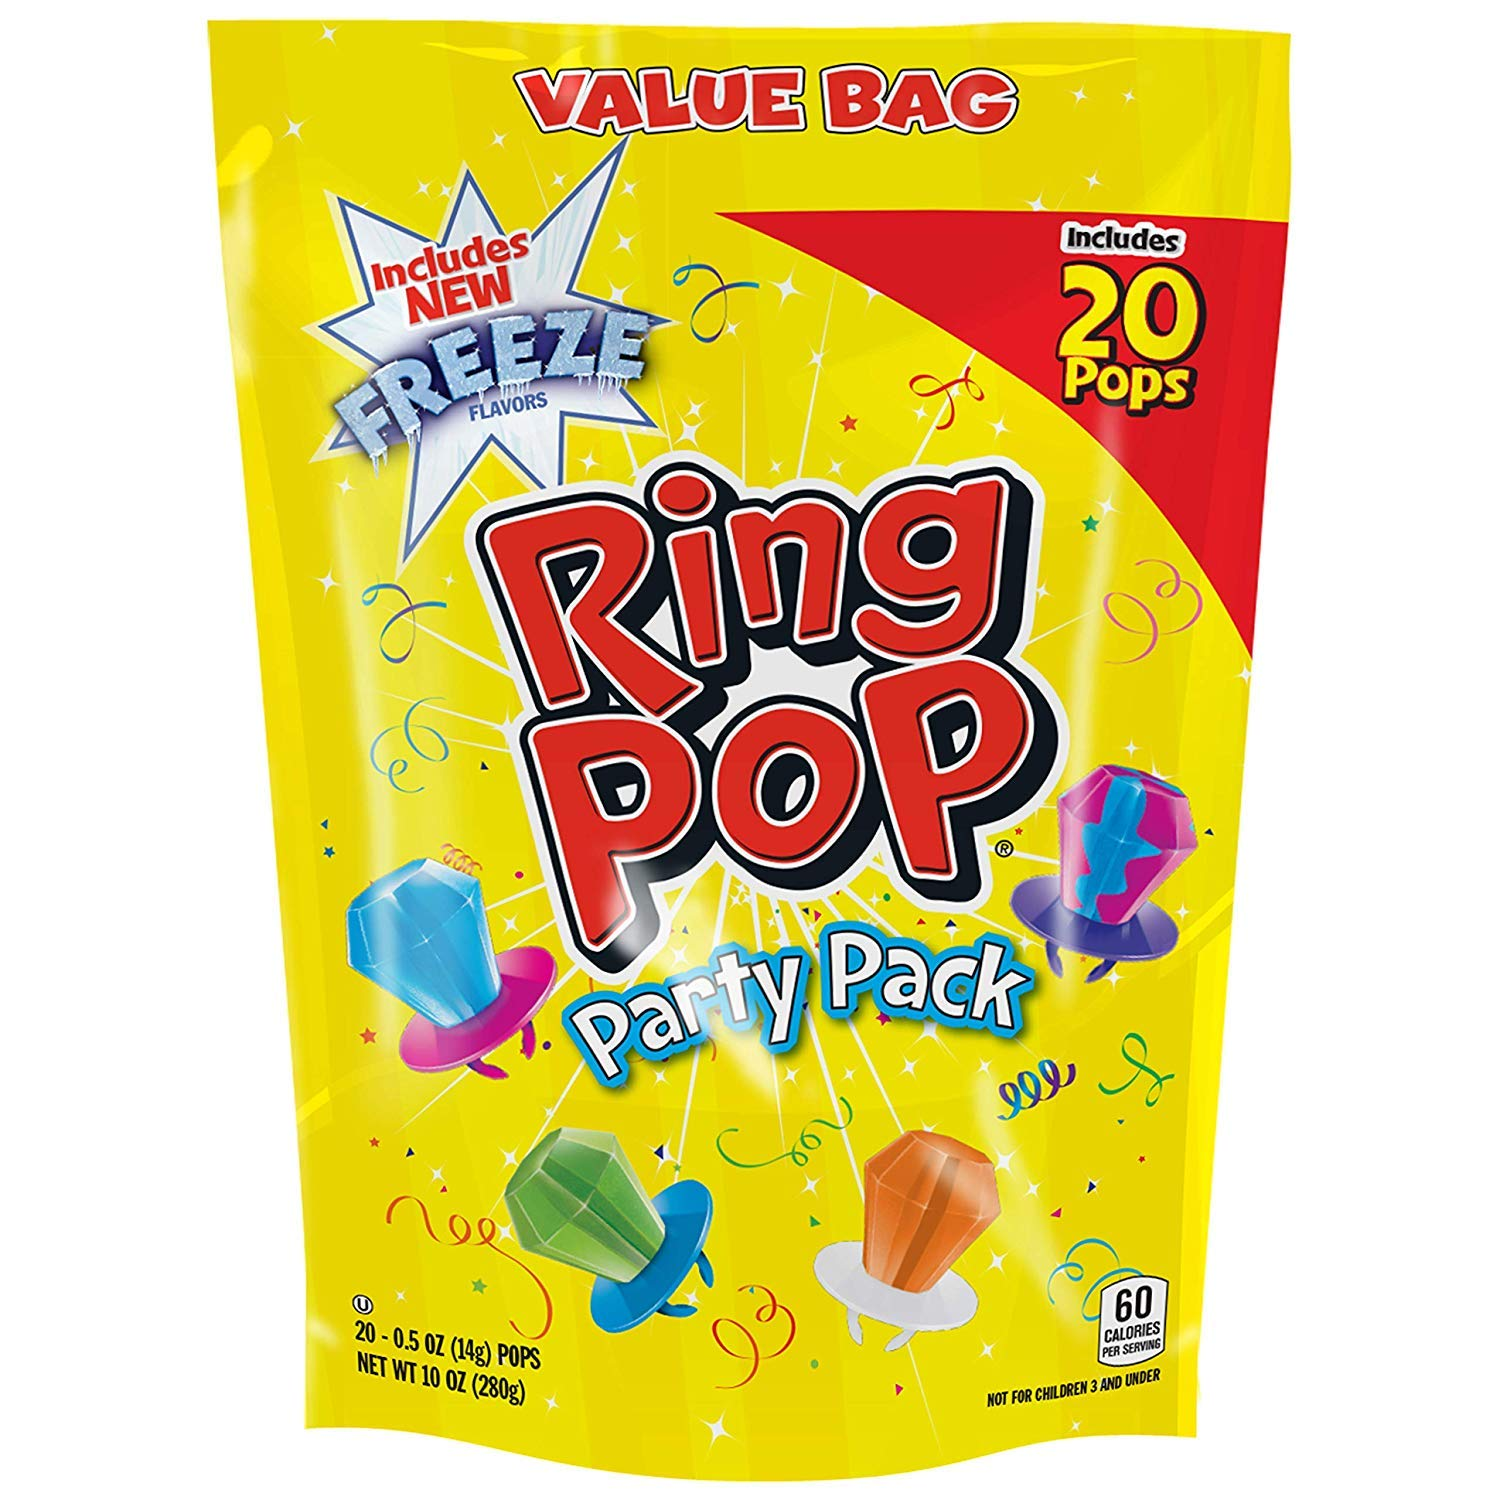 Ring POP Individually Wrapped Variety Halloween Party Pack - Candy Lollipop Suckers W/ Assorted Flavors, 20 Count (Pack of 1) (3 pack) by Ring Pop